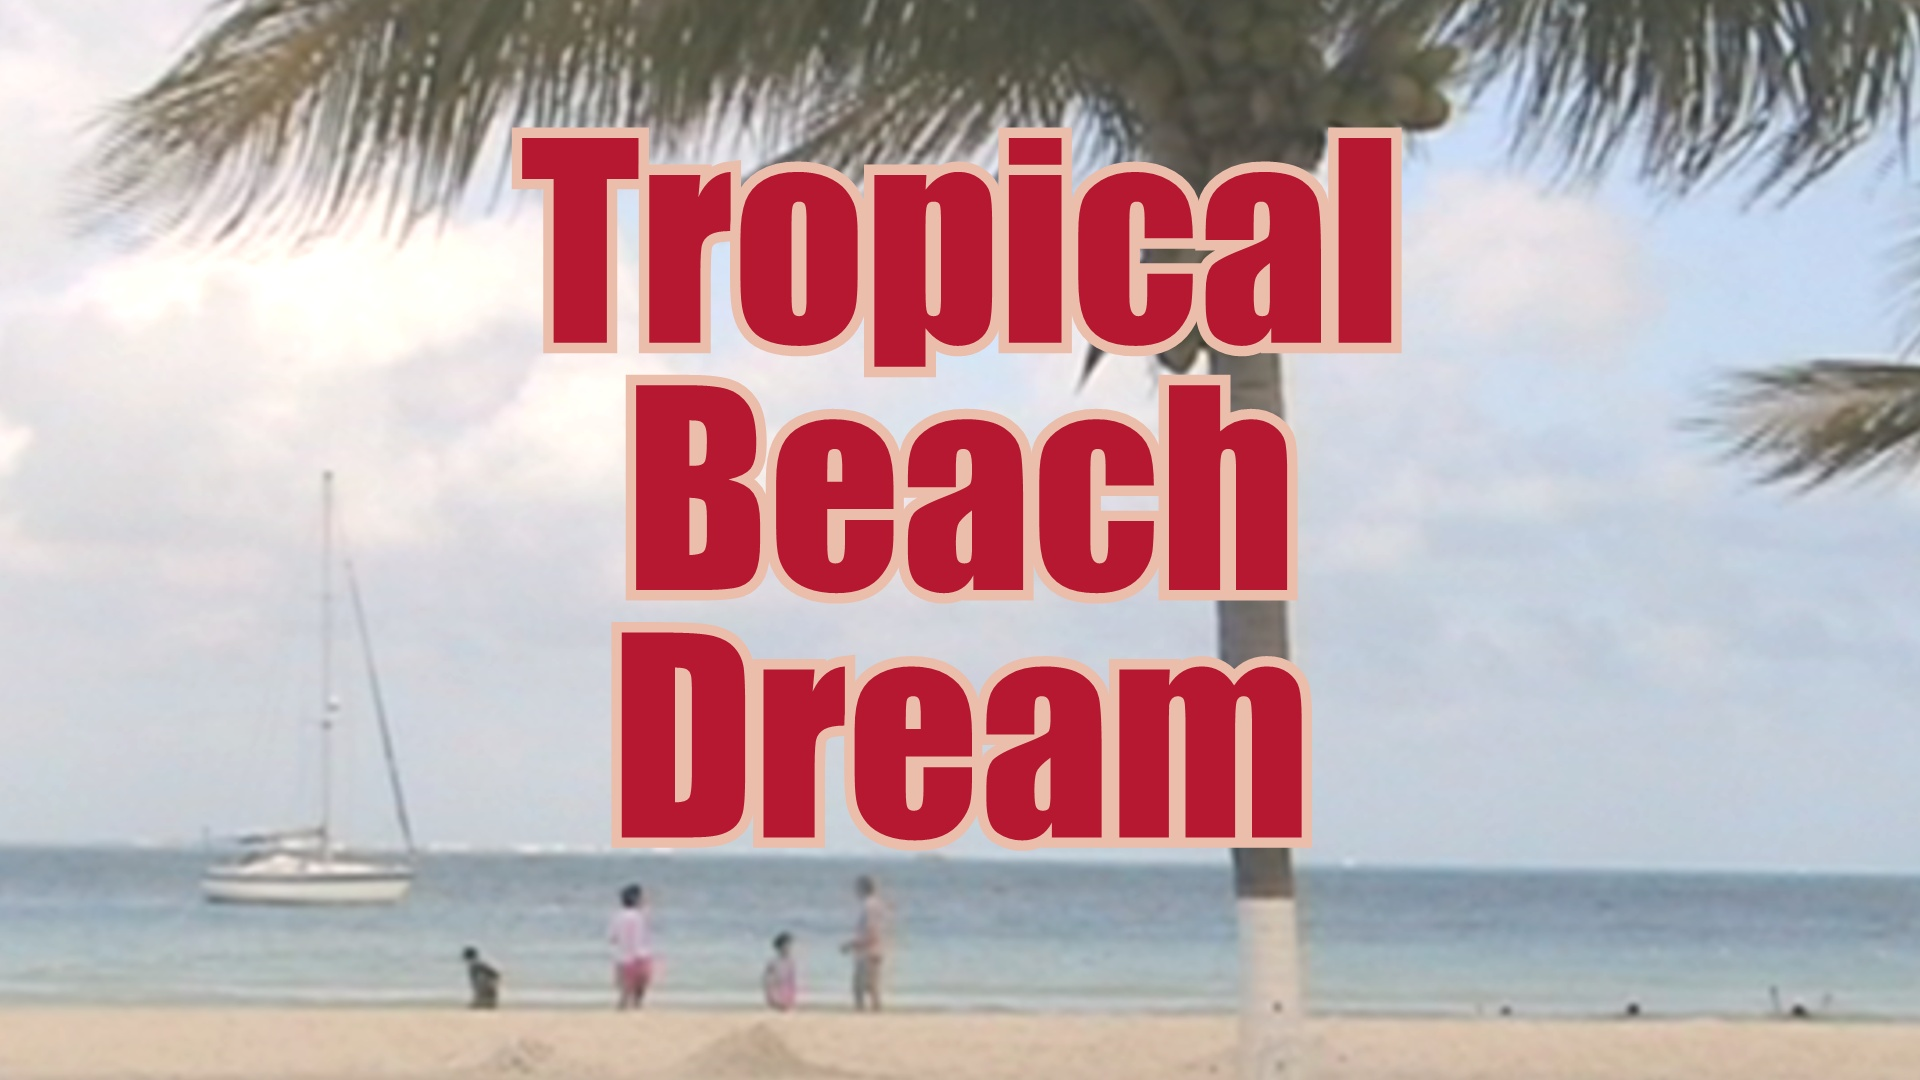 meaning of tropical beach dream